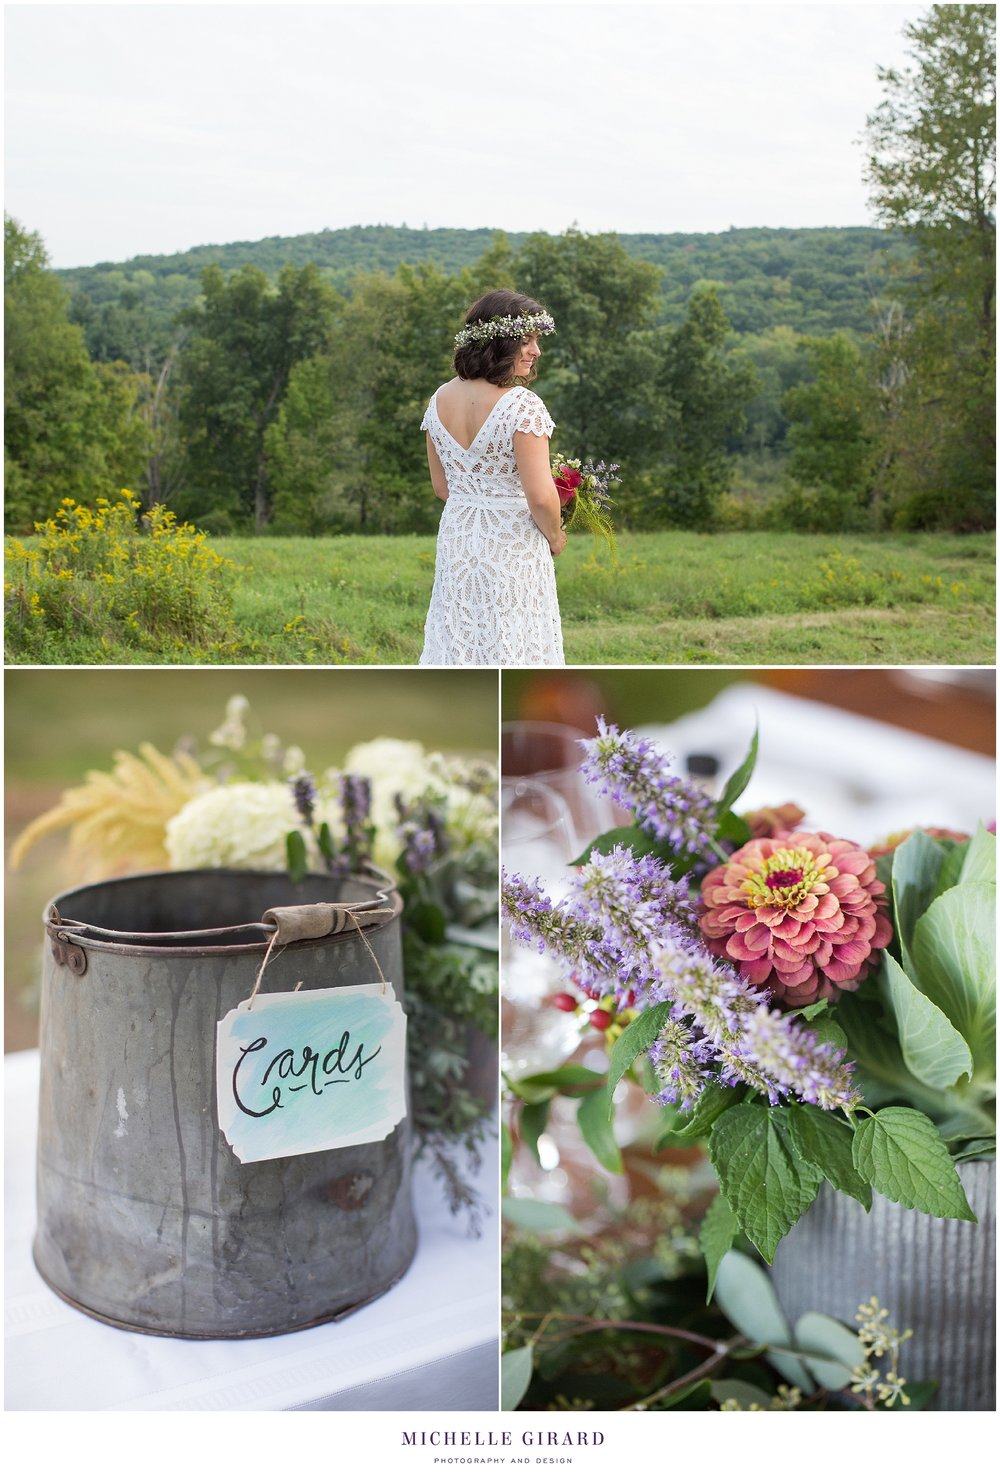 RusticWedding_MaplewoodFamilyFarm_MountainTopCeremony_MichelleGirardPhotography25.jpg